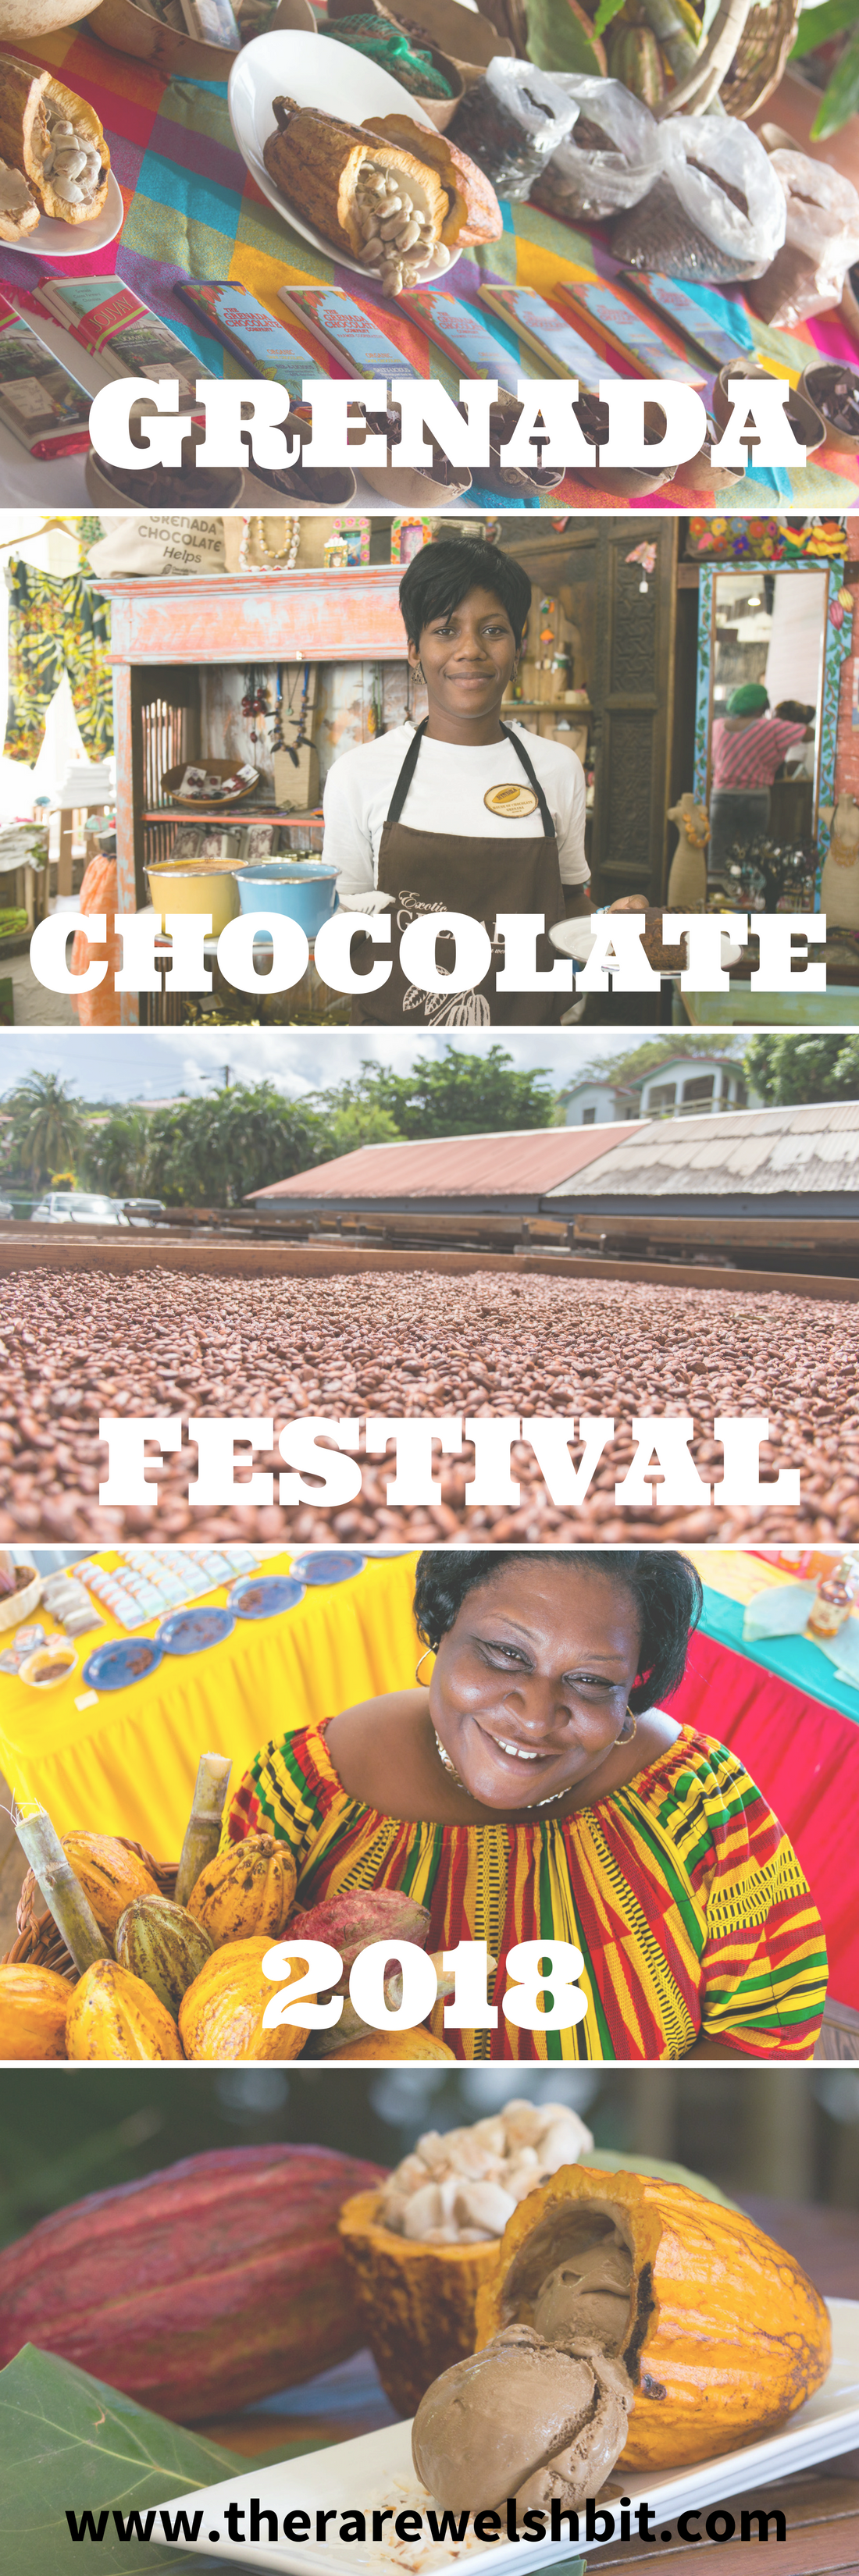 Grenada Chocolate Festival is paradise for any chocoholic or chocolate lover, featuring chocolate tasting, chocolate making, chocolate beer, cocoa farming and much more.